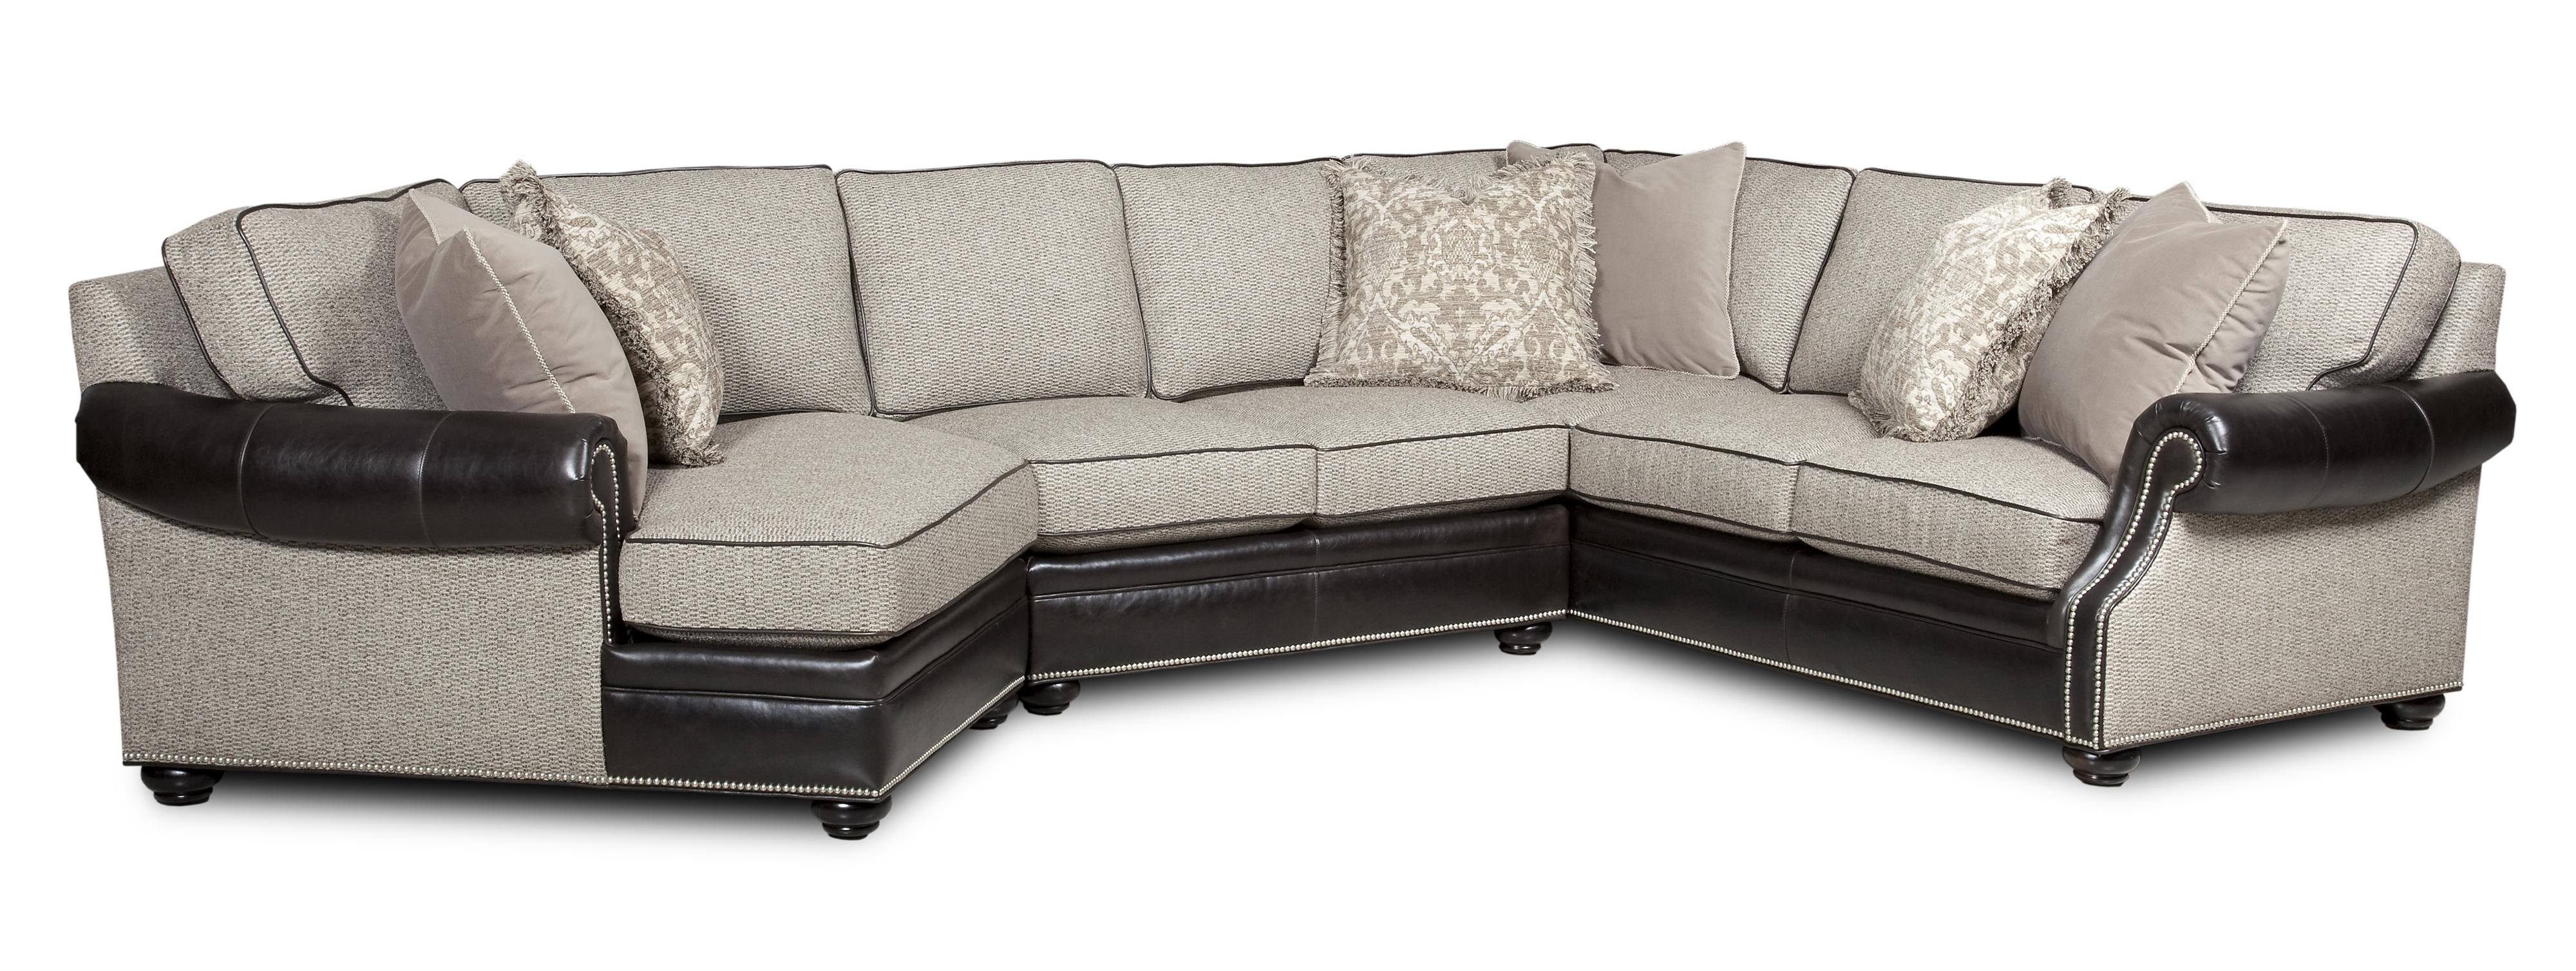 bradington young warner three piece sectional sofa with laf cuddler ahfa sofa sectional dealer locator